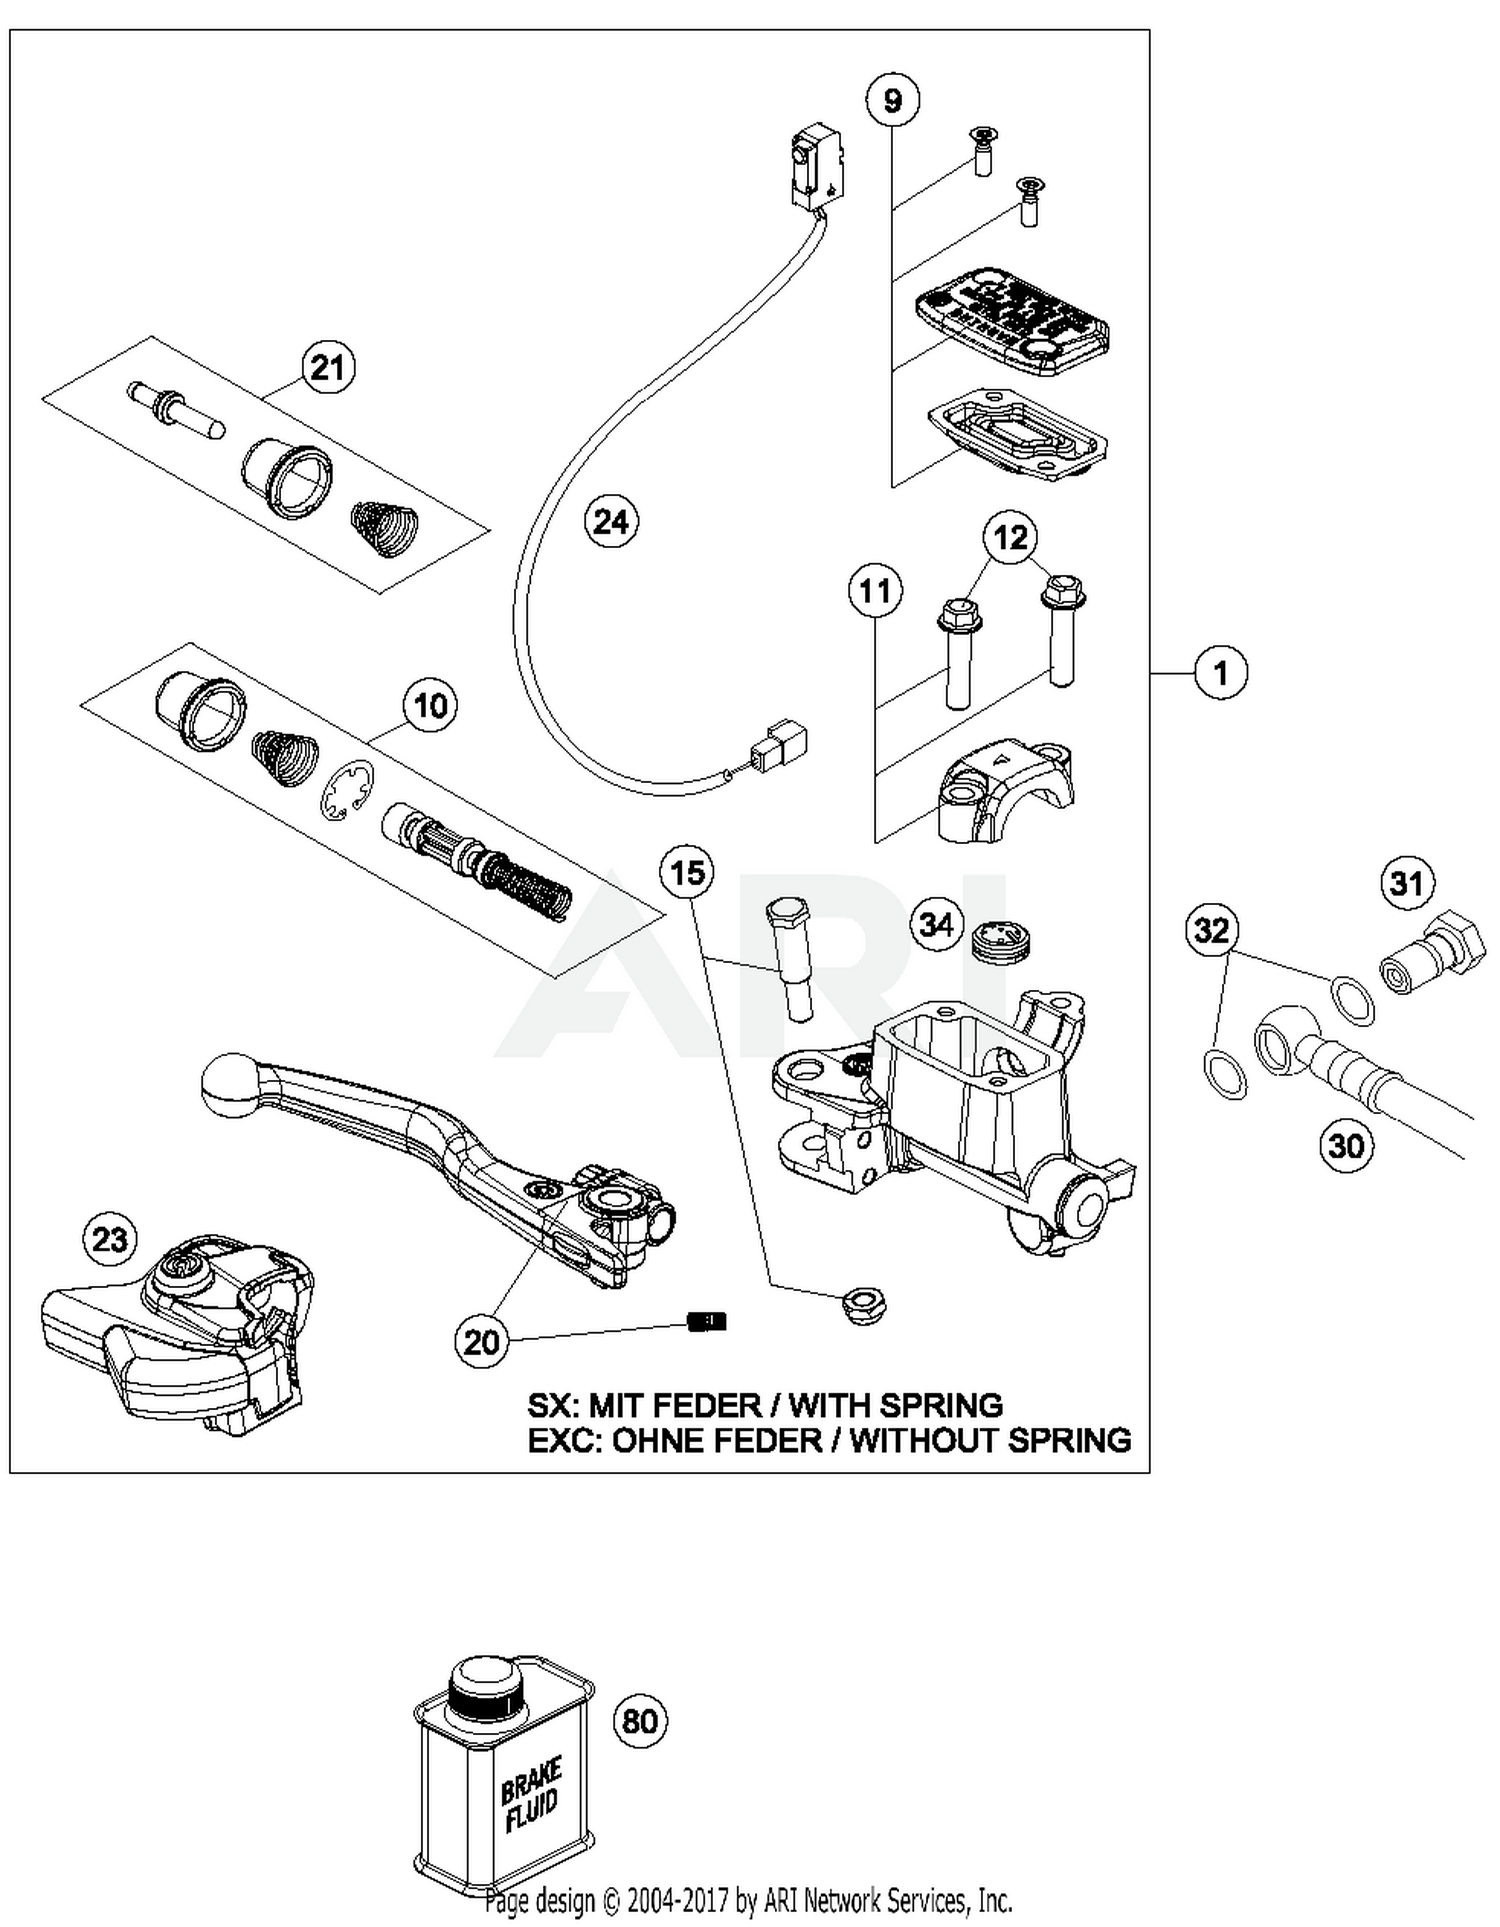 2017 Husqvarna Fe 501 Hand Brake Cylinder Parts Best Oem Aris Fog Light Wiring Diagram Schematic Search Results 0 In Schematics